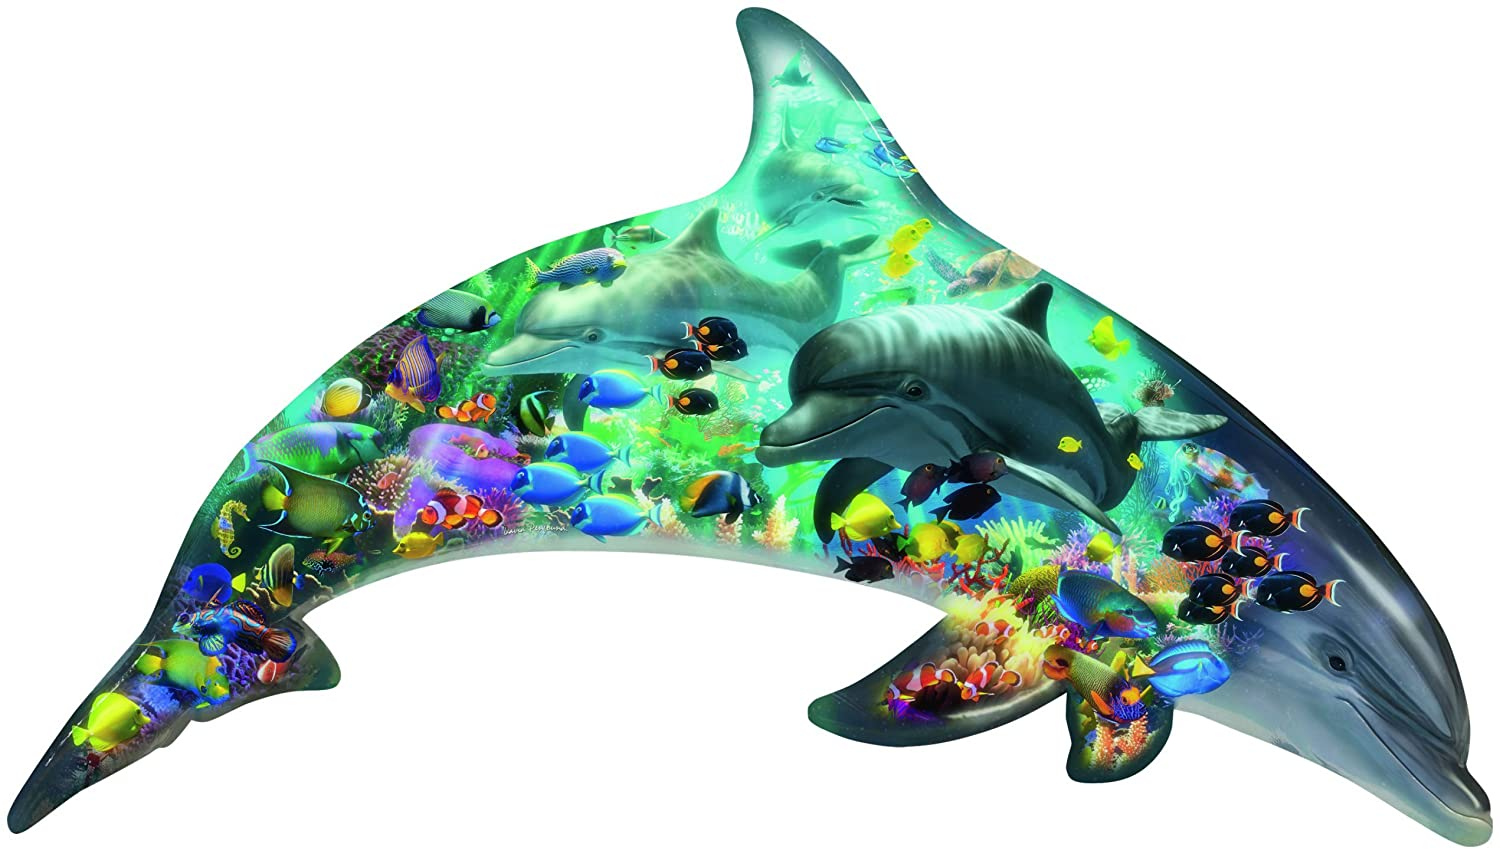 Buy Ravensburger Puzzles Dolphin Silhouette, Multi Color (862 Pieces ...